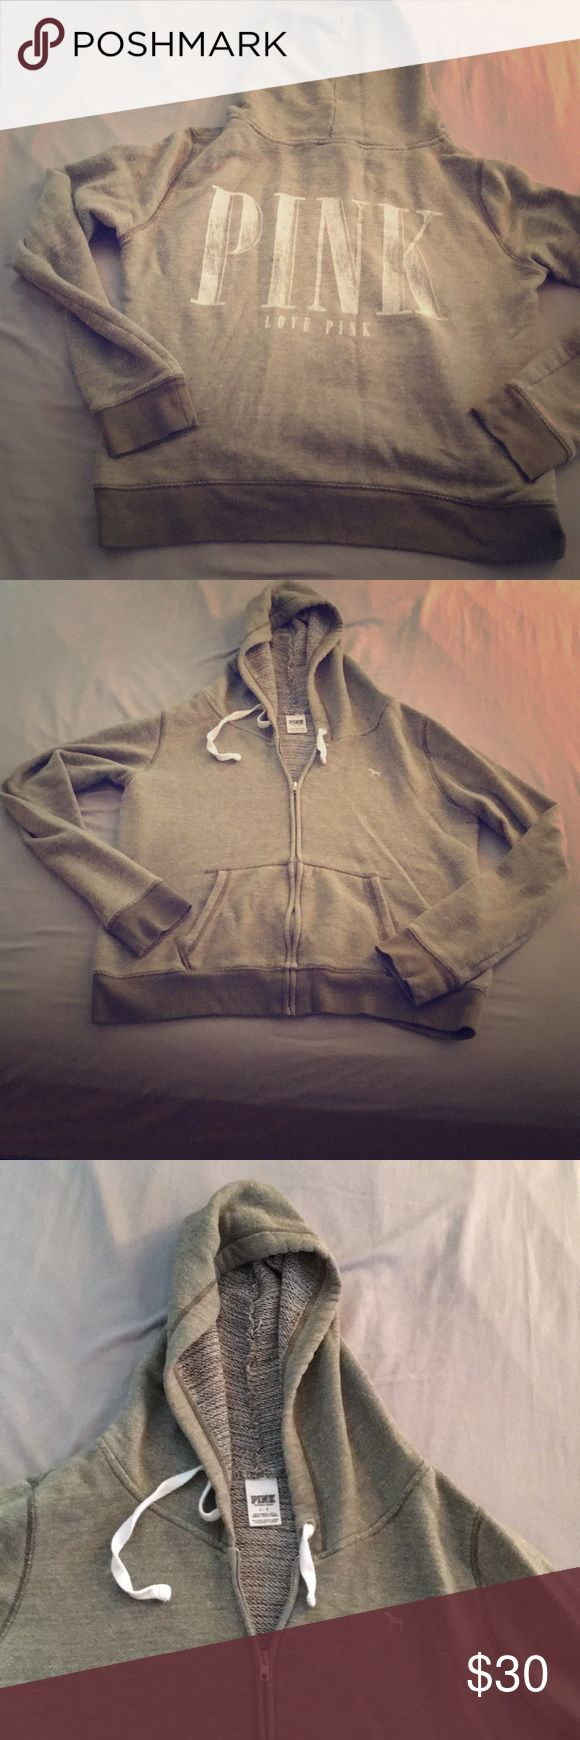 VS PINK OLIVE GREEN ZIP UP HOODIE VICTORIAS SECRET PINK OLIVE GREEN ZIP UP HOODIE. darker cuffs on sleeves and bottom trim of sweatshirt. very gently pre-loved, in like-new condition. size large. PINK Victoria's Secret Tops Sweatshirts & Hoodies